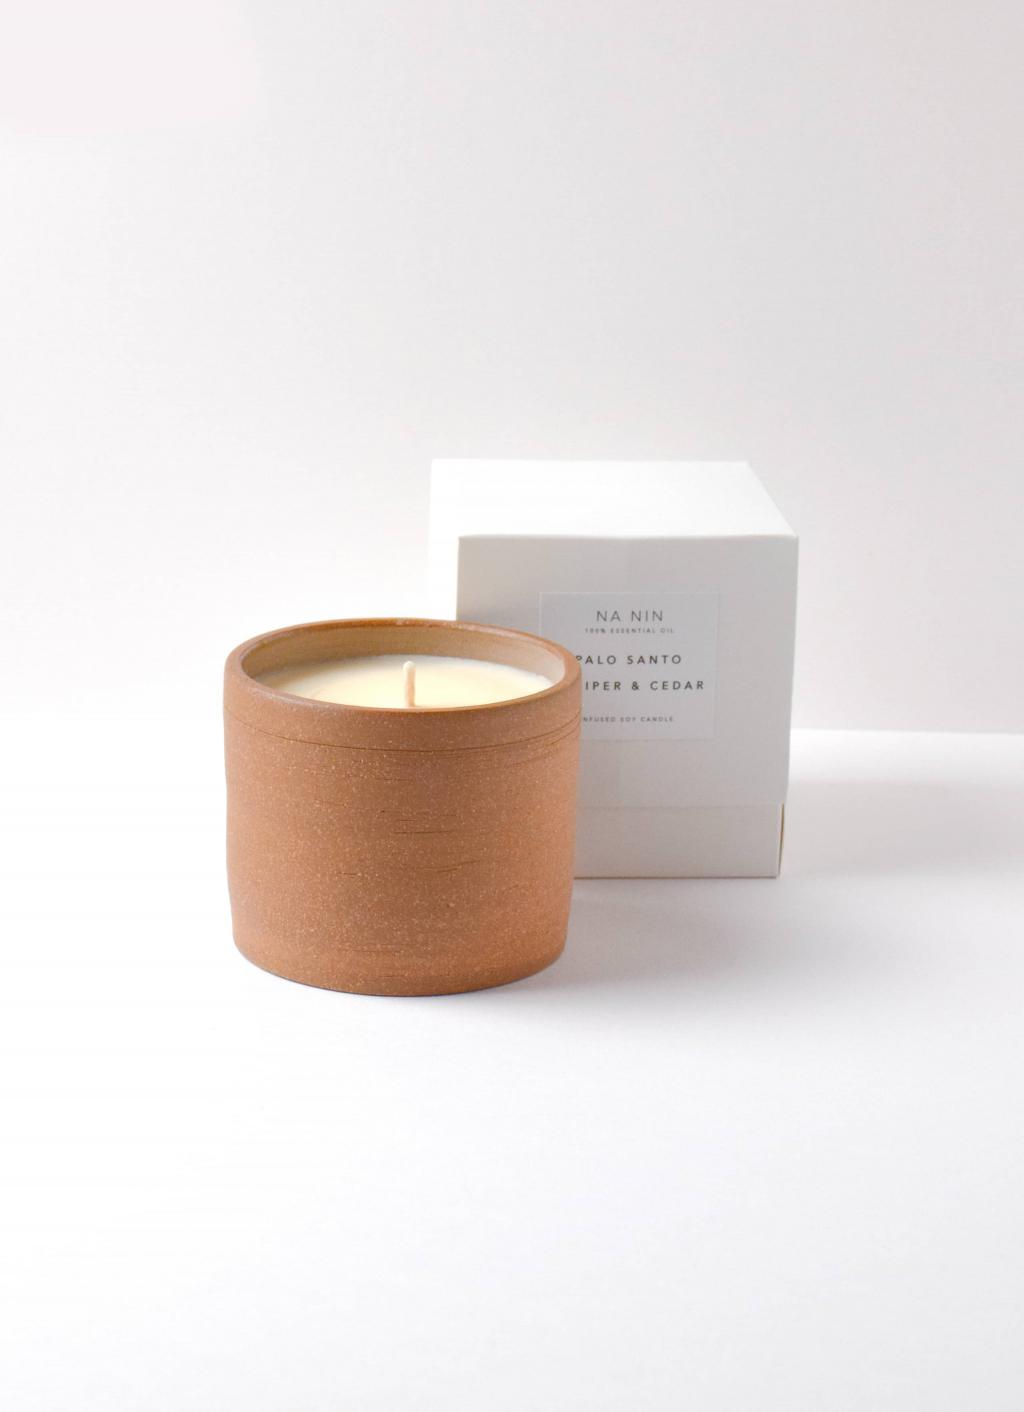 Na Nin - Terracotta Soy Wax Candle - Palo Santo - Juniper Berry - Cedarwood